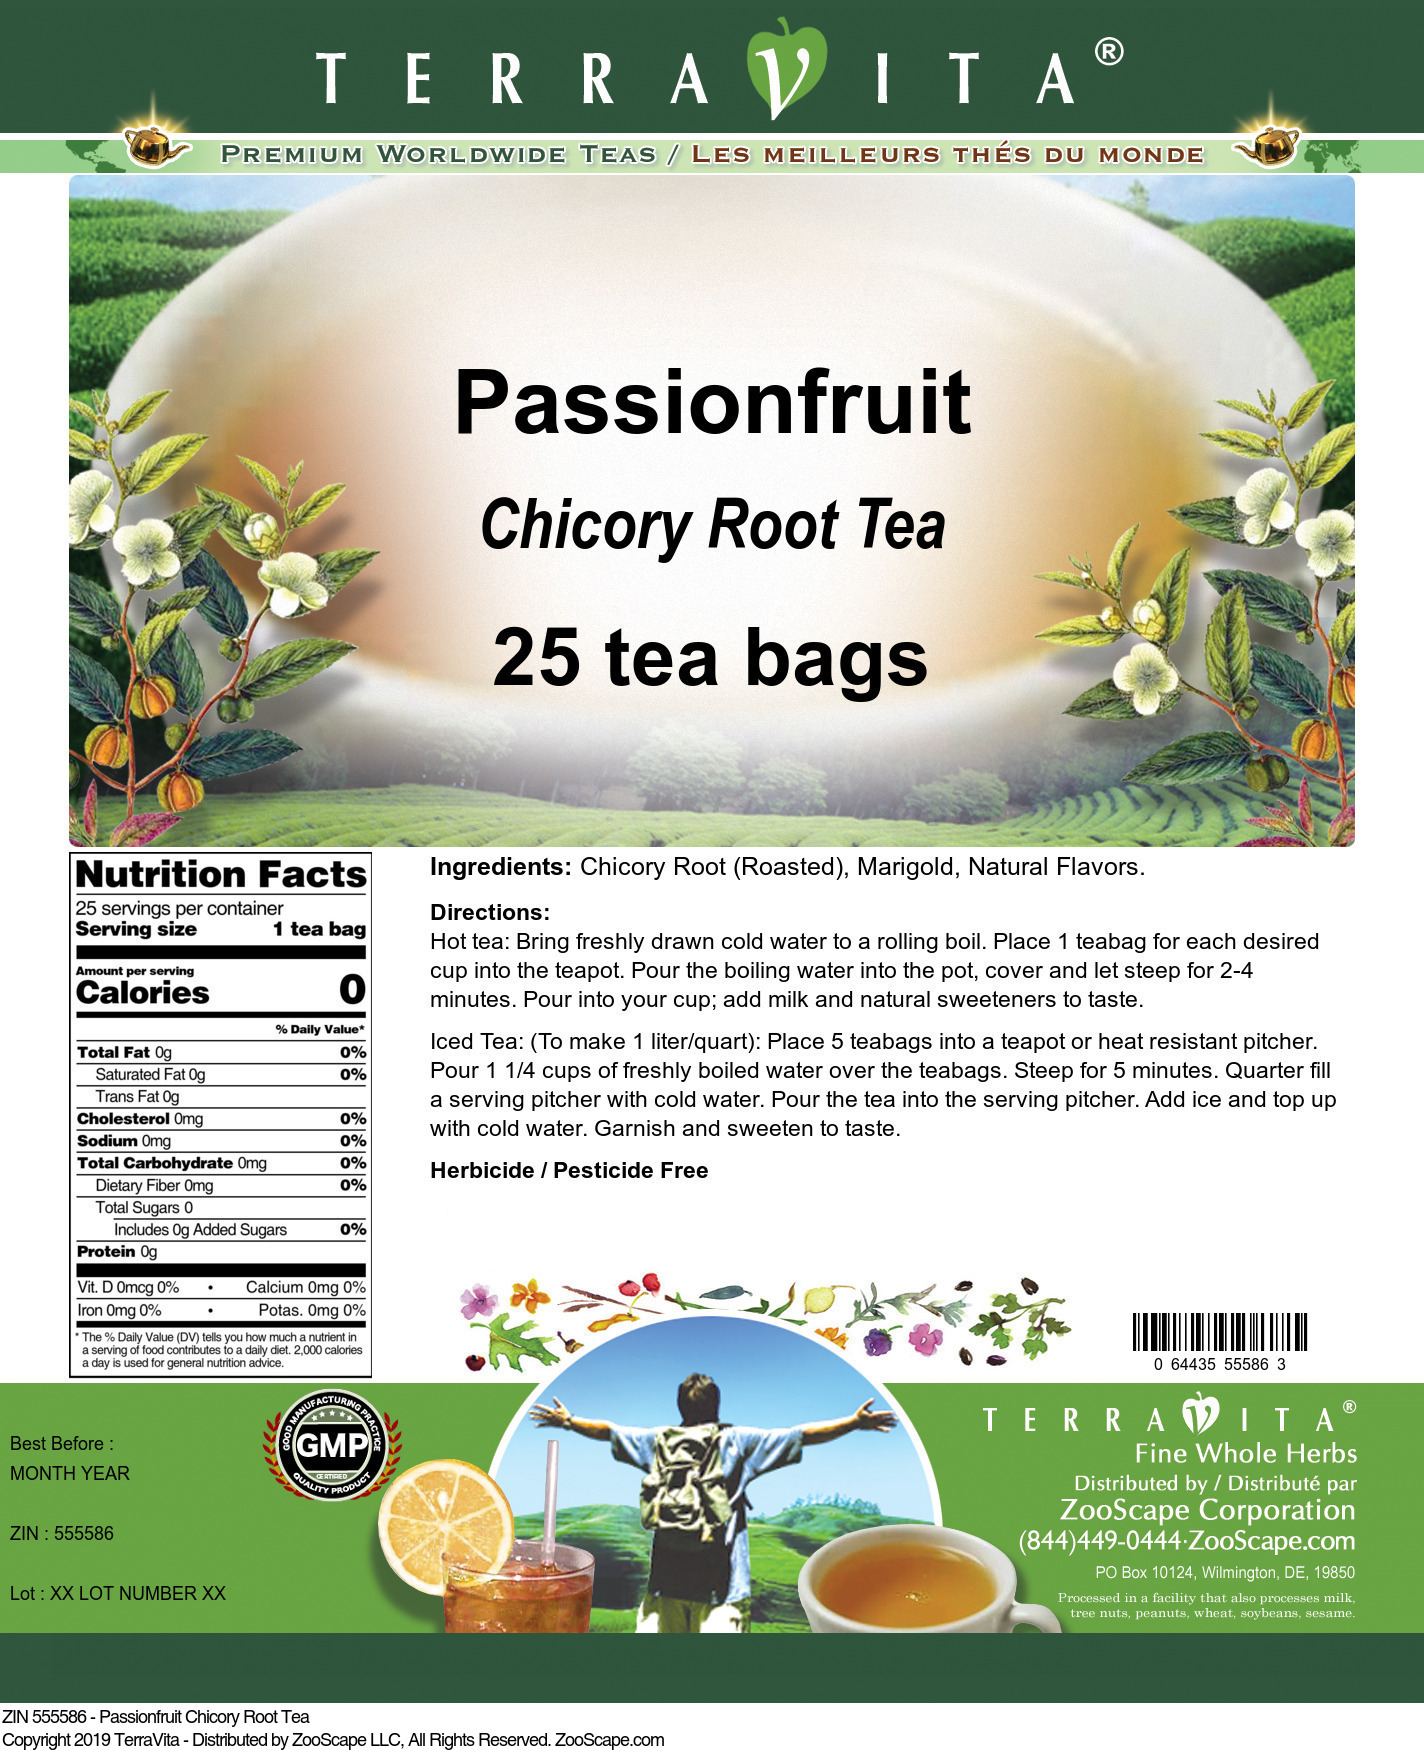 Passionfruit Chicory Root Tea